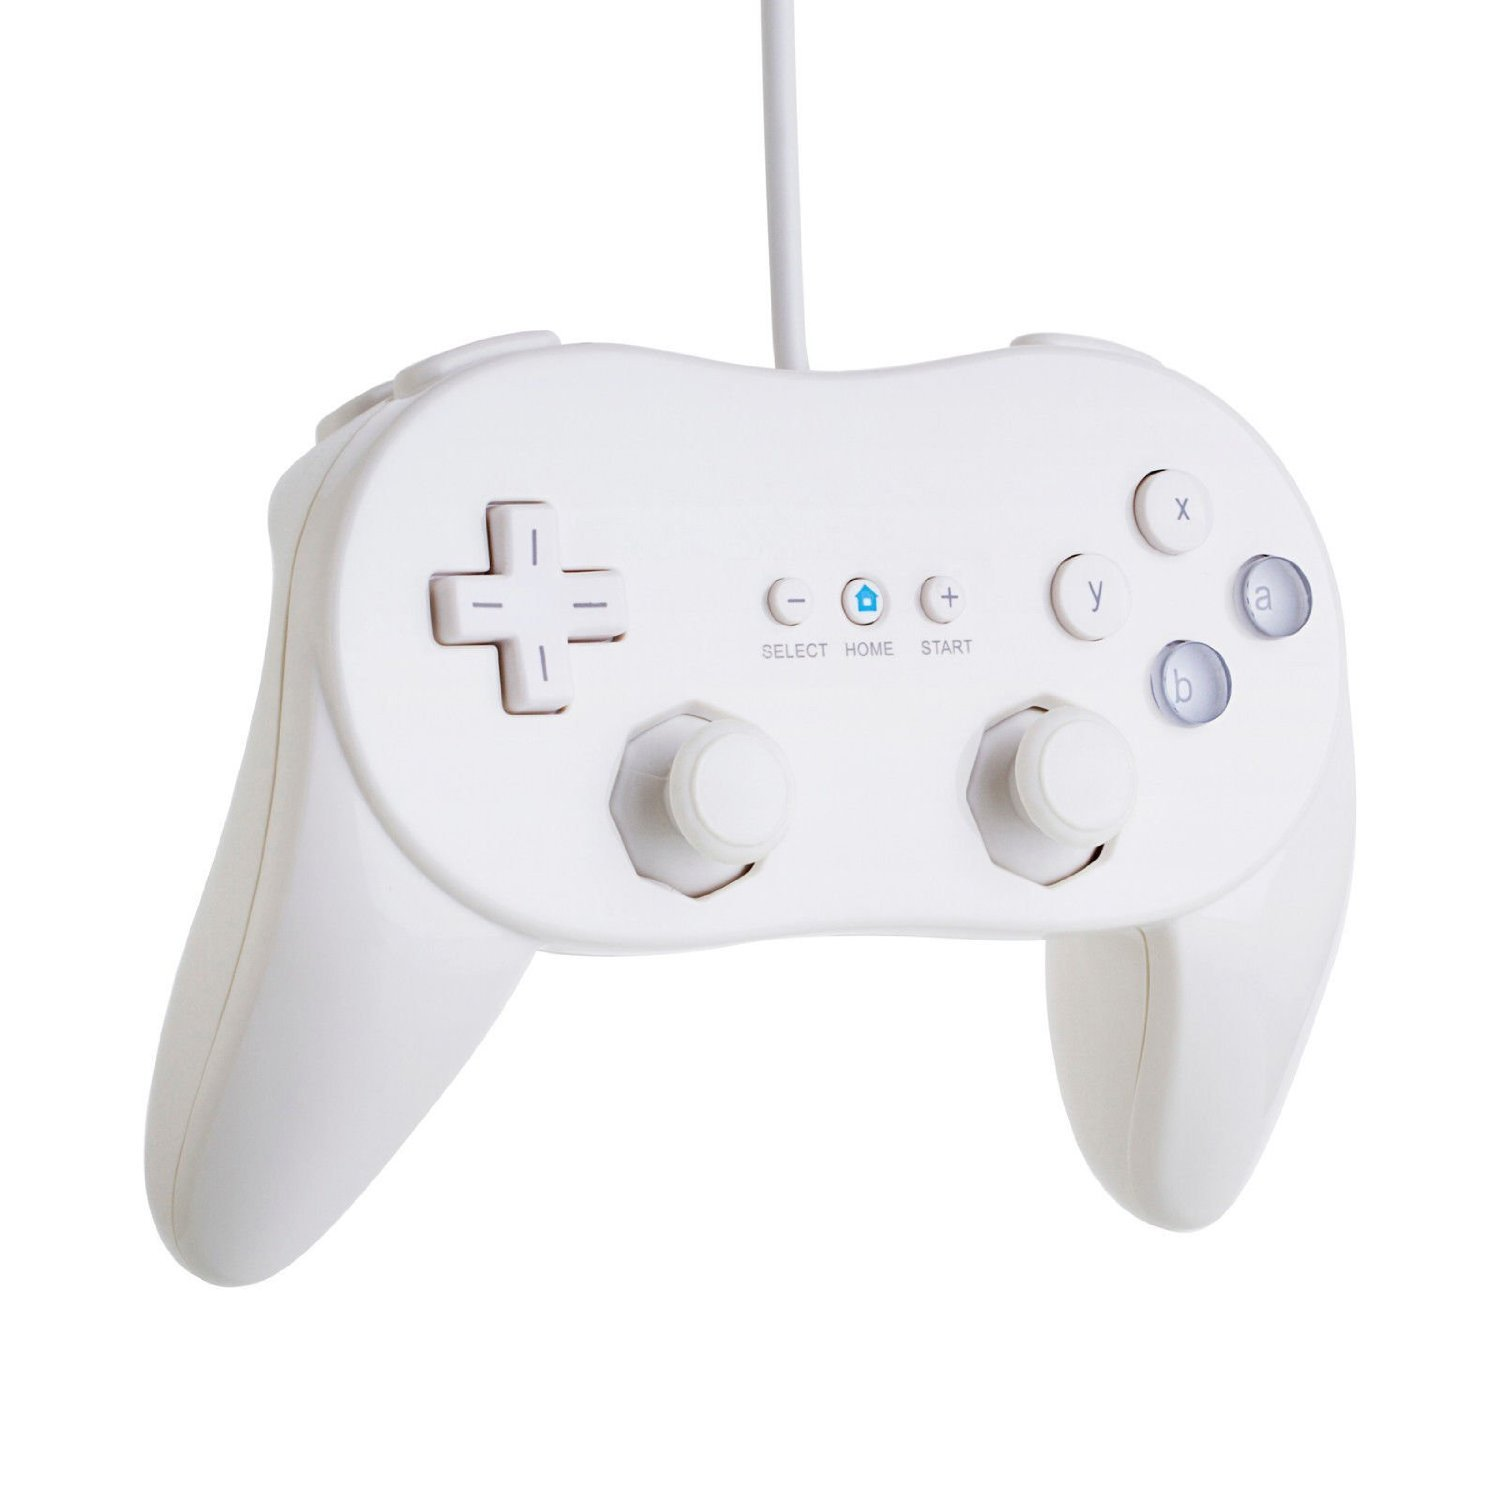 New Classic Pro Controller For Nintendo Wii/WiiU White: Pc